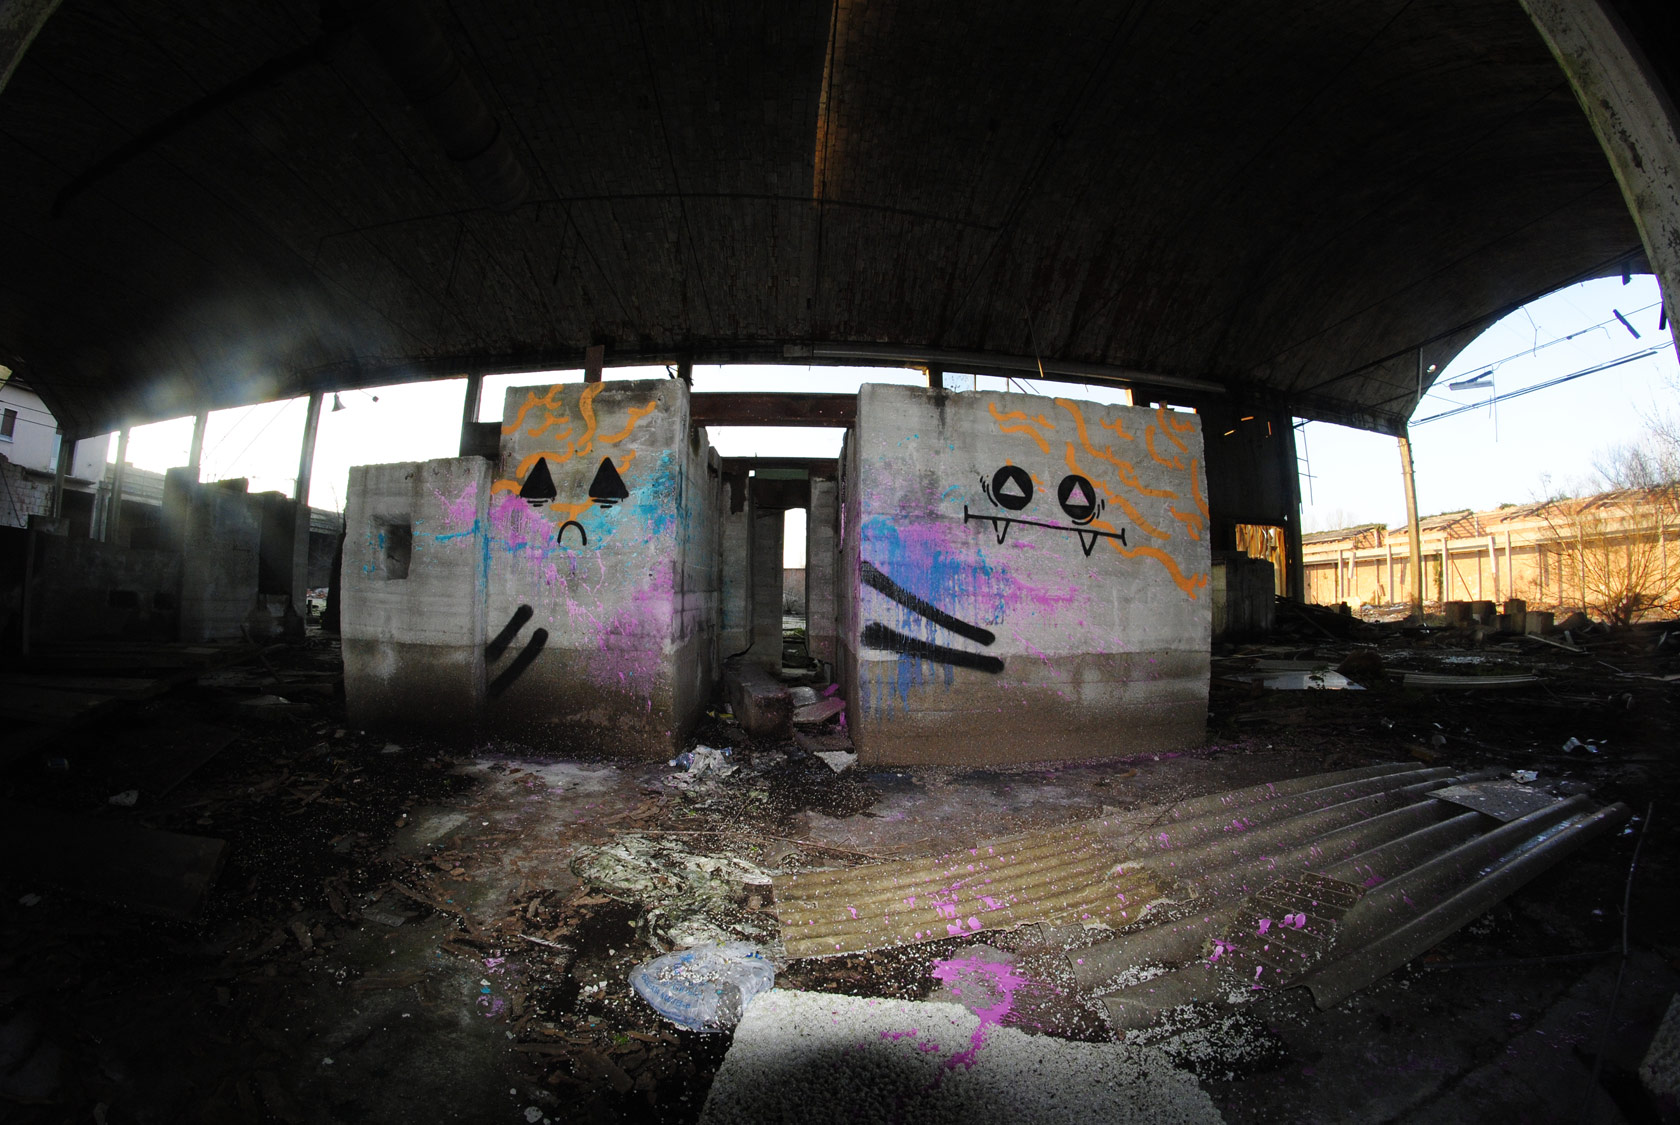 el-euro-series-of-new-pieces-in-an-abandoned-places-04